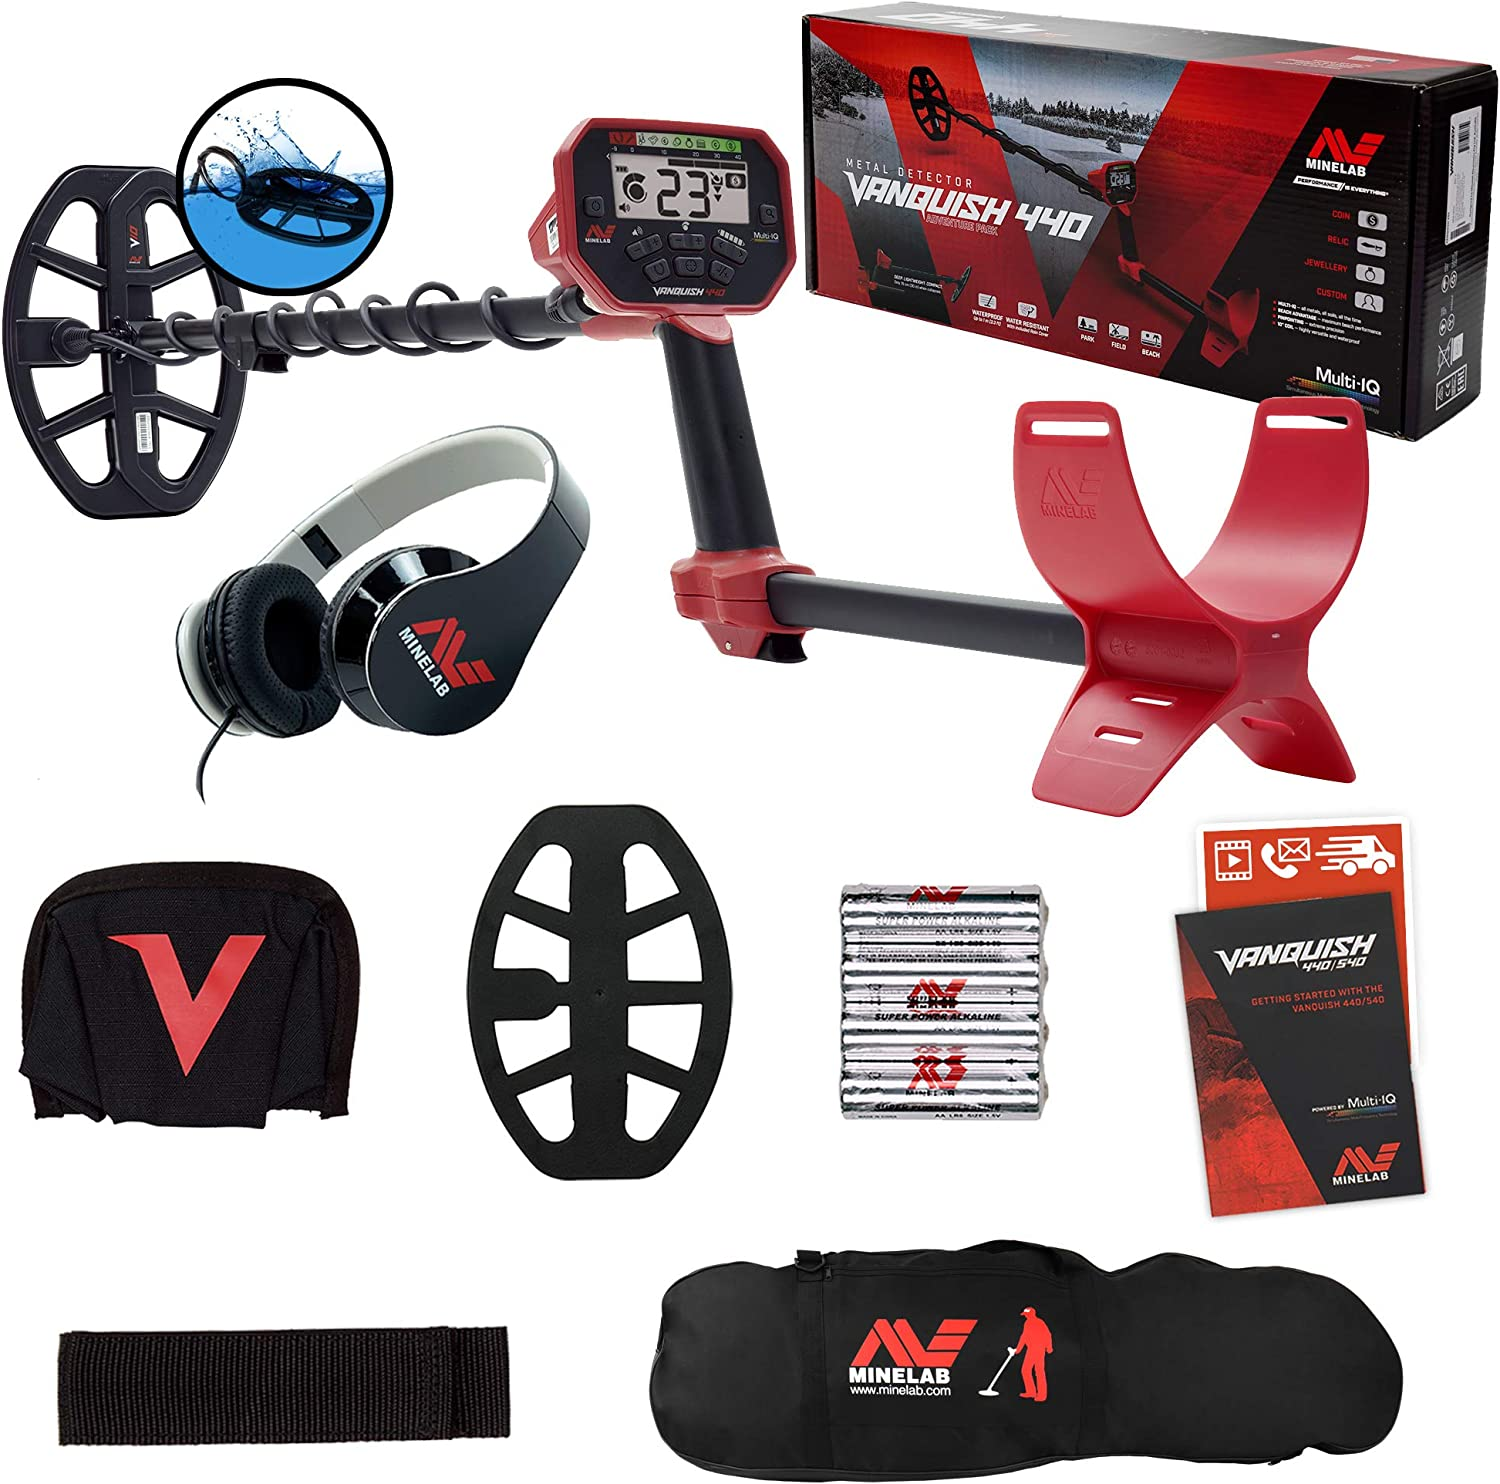 Minelab Vanquish 440 Direct sale of manufacturer Metal High quality new Detector with 7 Waterproof 10 x Co DD